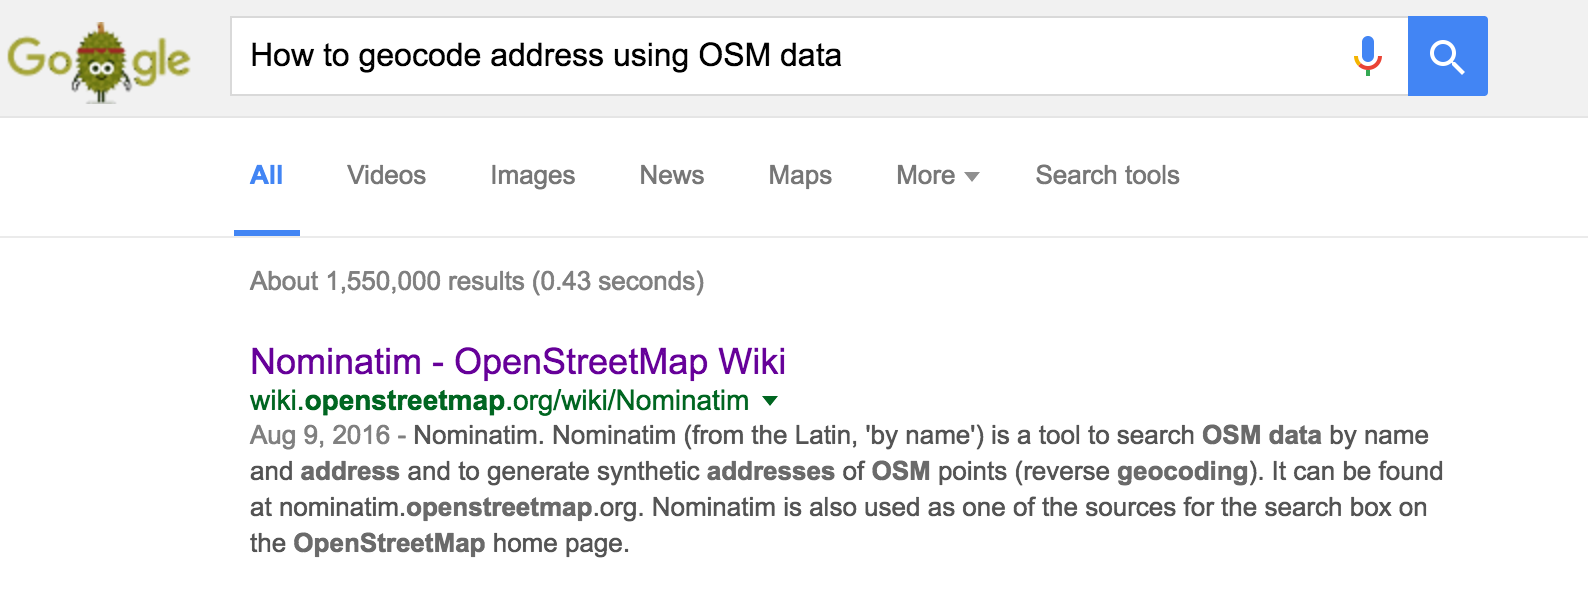 How to geocode address? - OSM Help